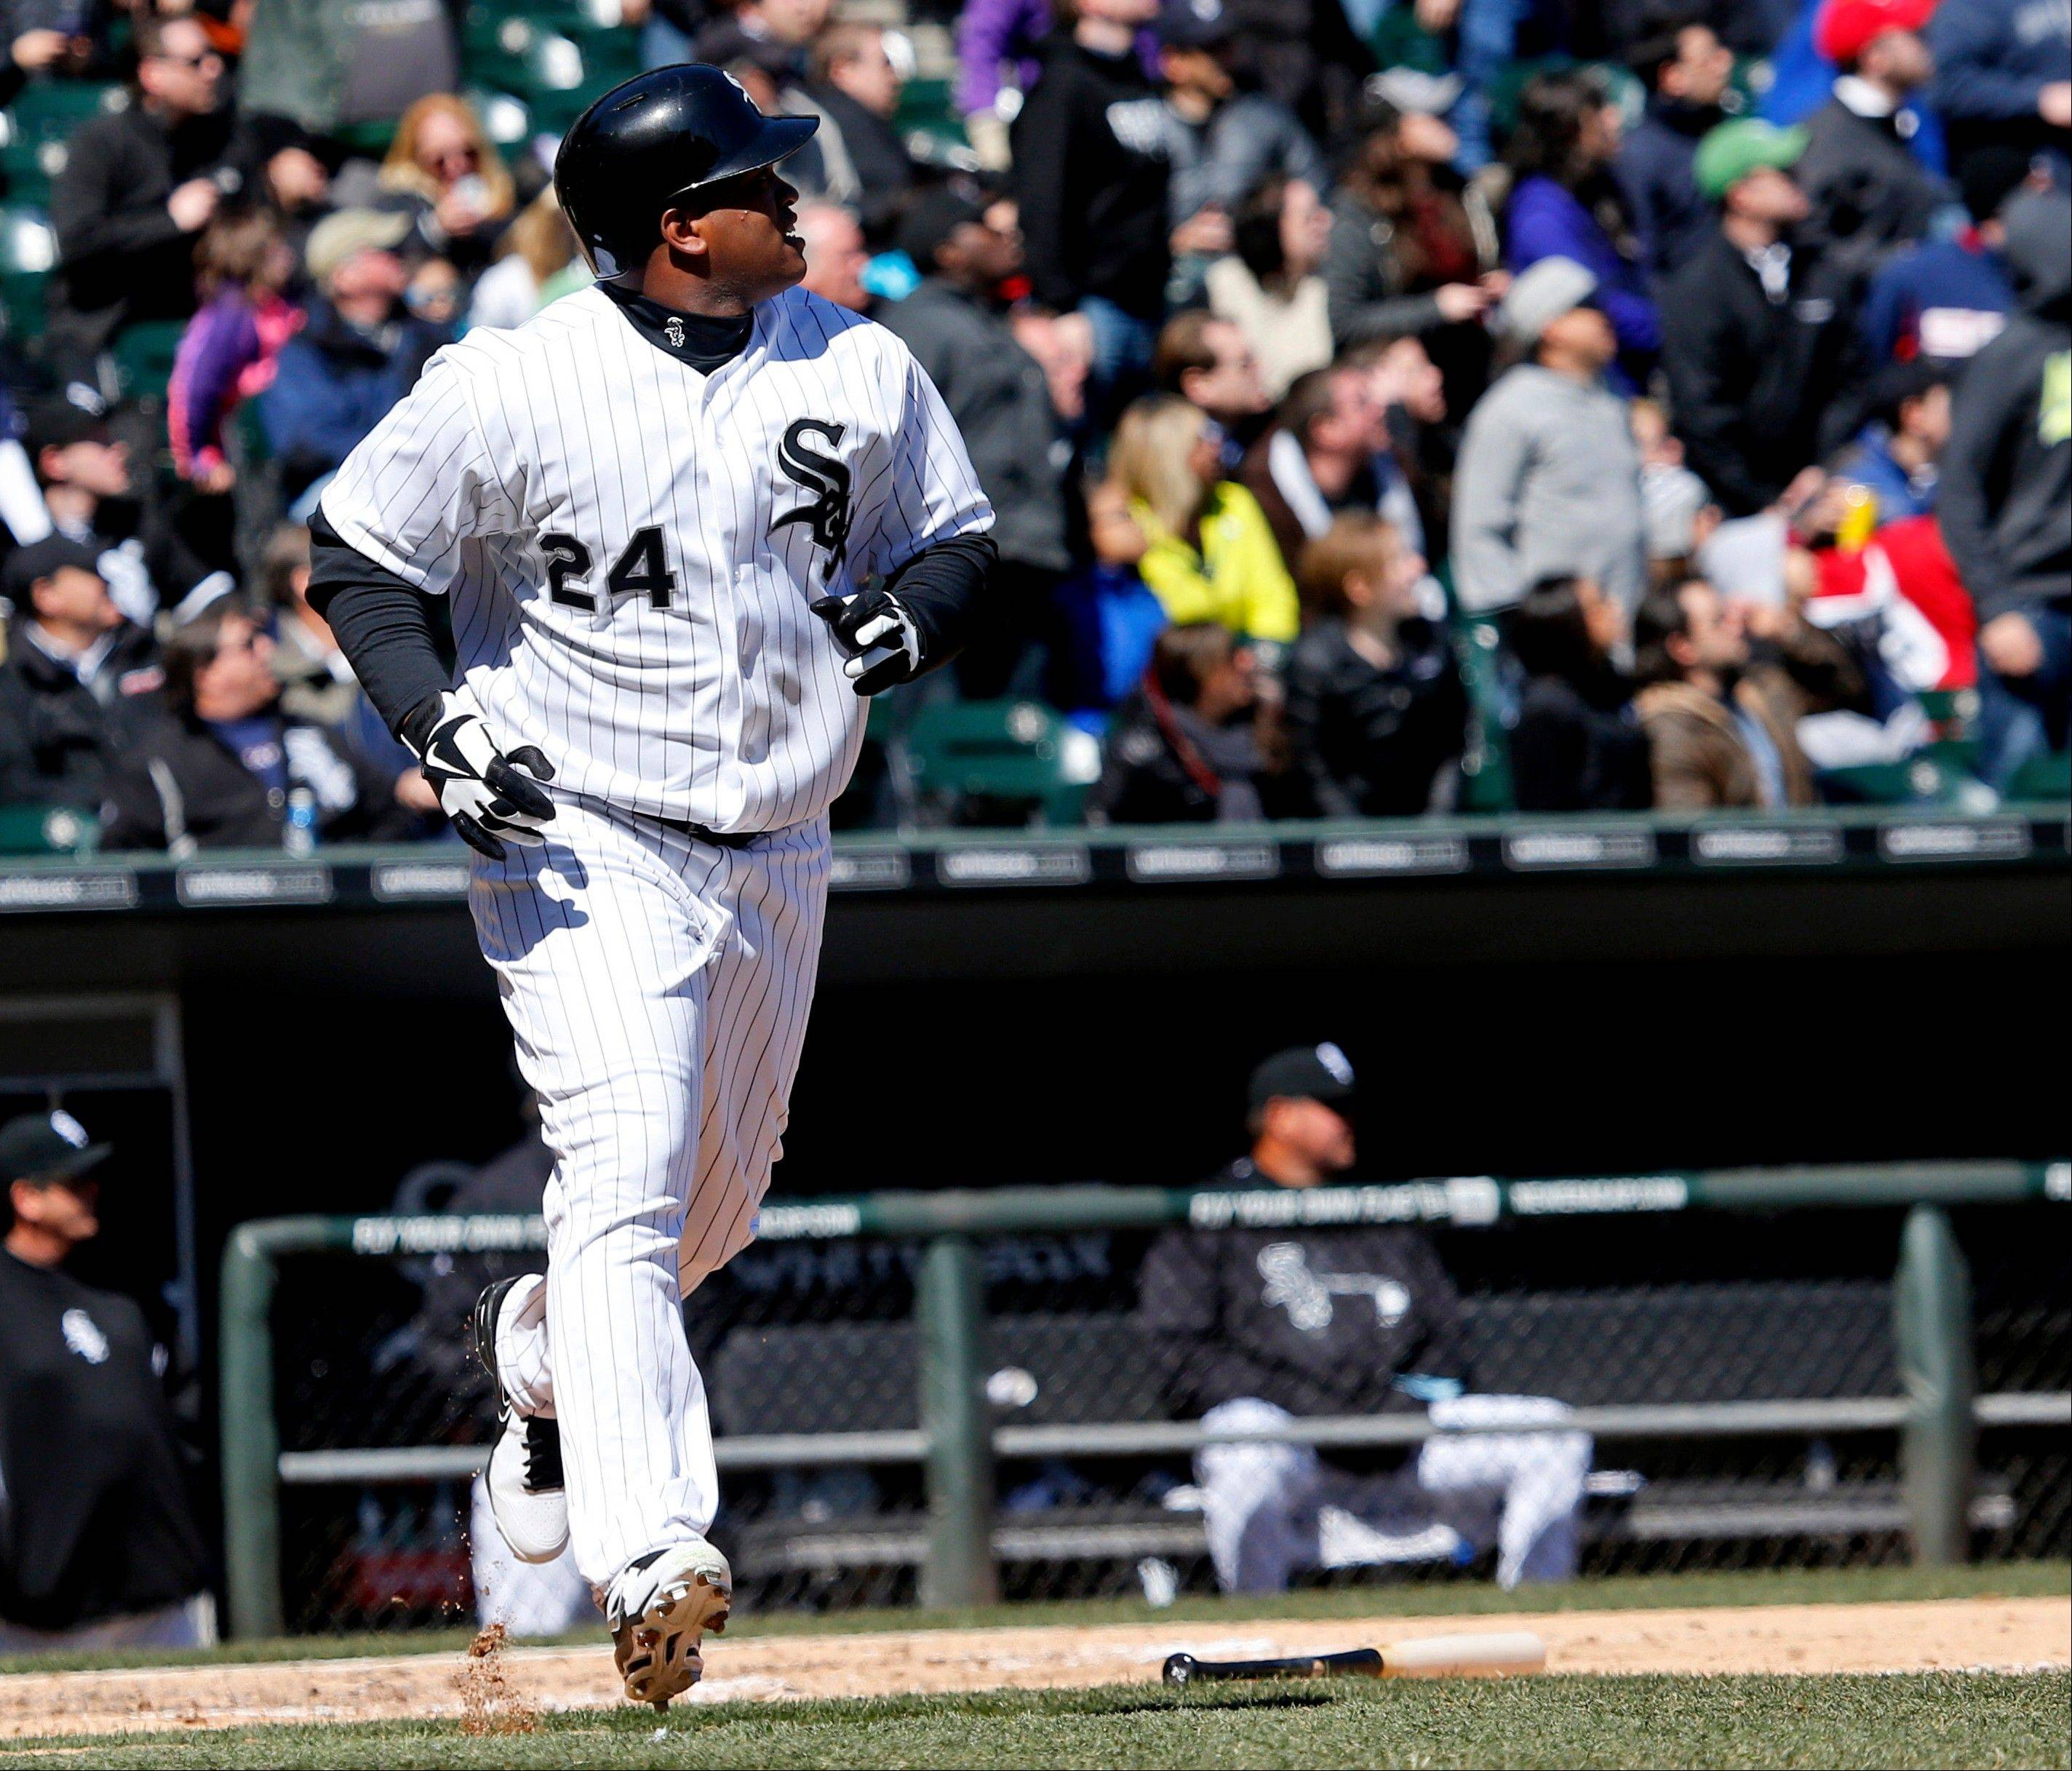 Chicago White Sox's Dayan Viciedo watches his two-run home run off Kansas City Royals starting pitcher Ervin Santana during the fourth inning of a baseball game Wednesday, April 3, 2013, in Chicago.